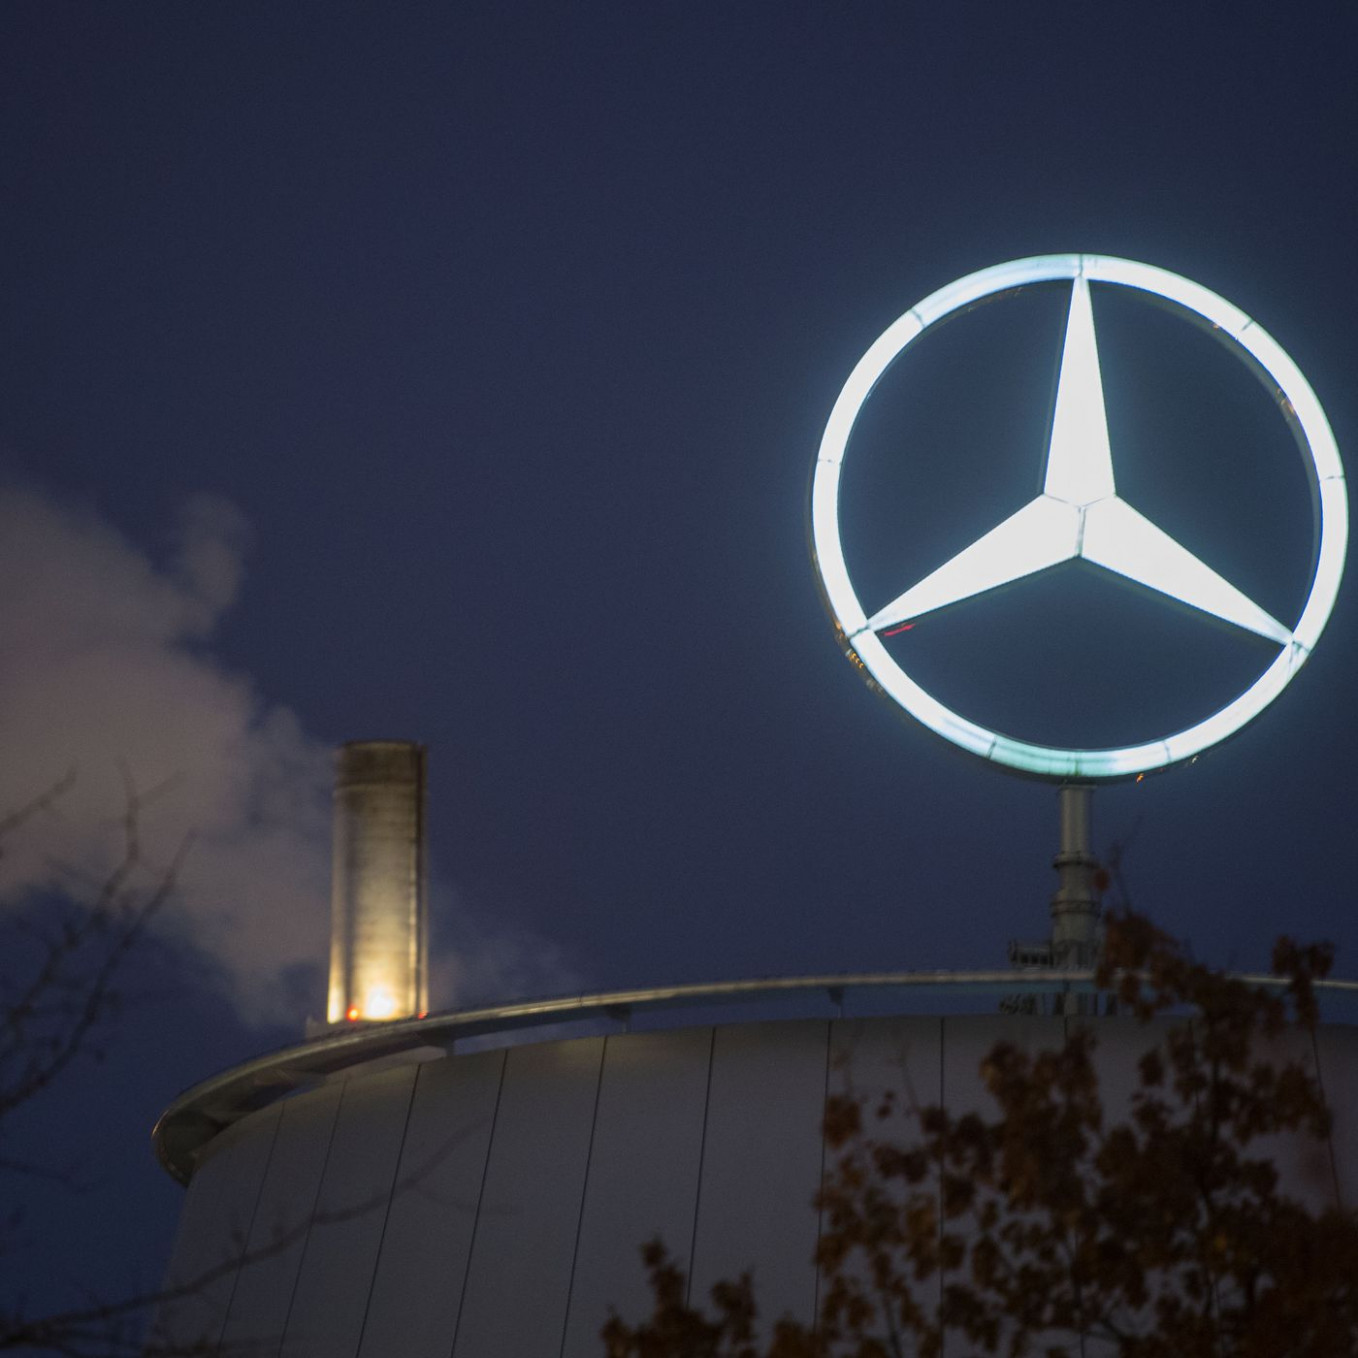 Daimler fined nearly $8 billion for selling cars that cheated ..